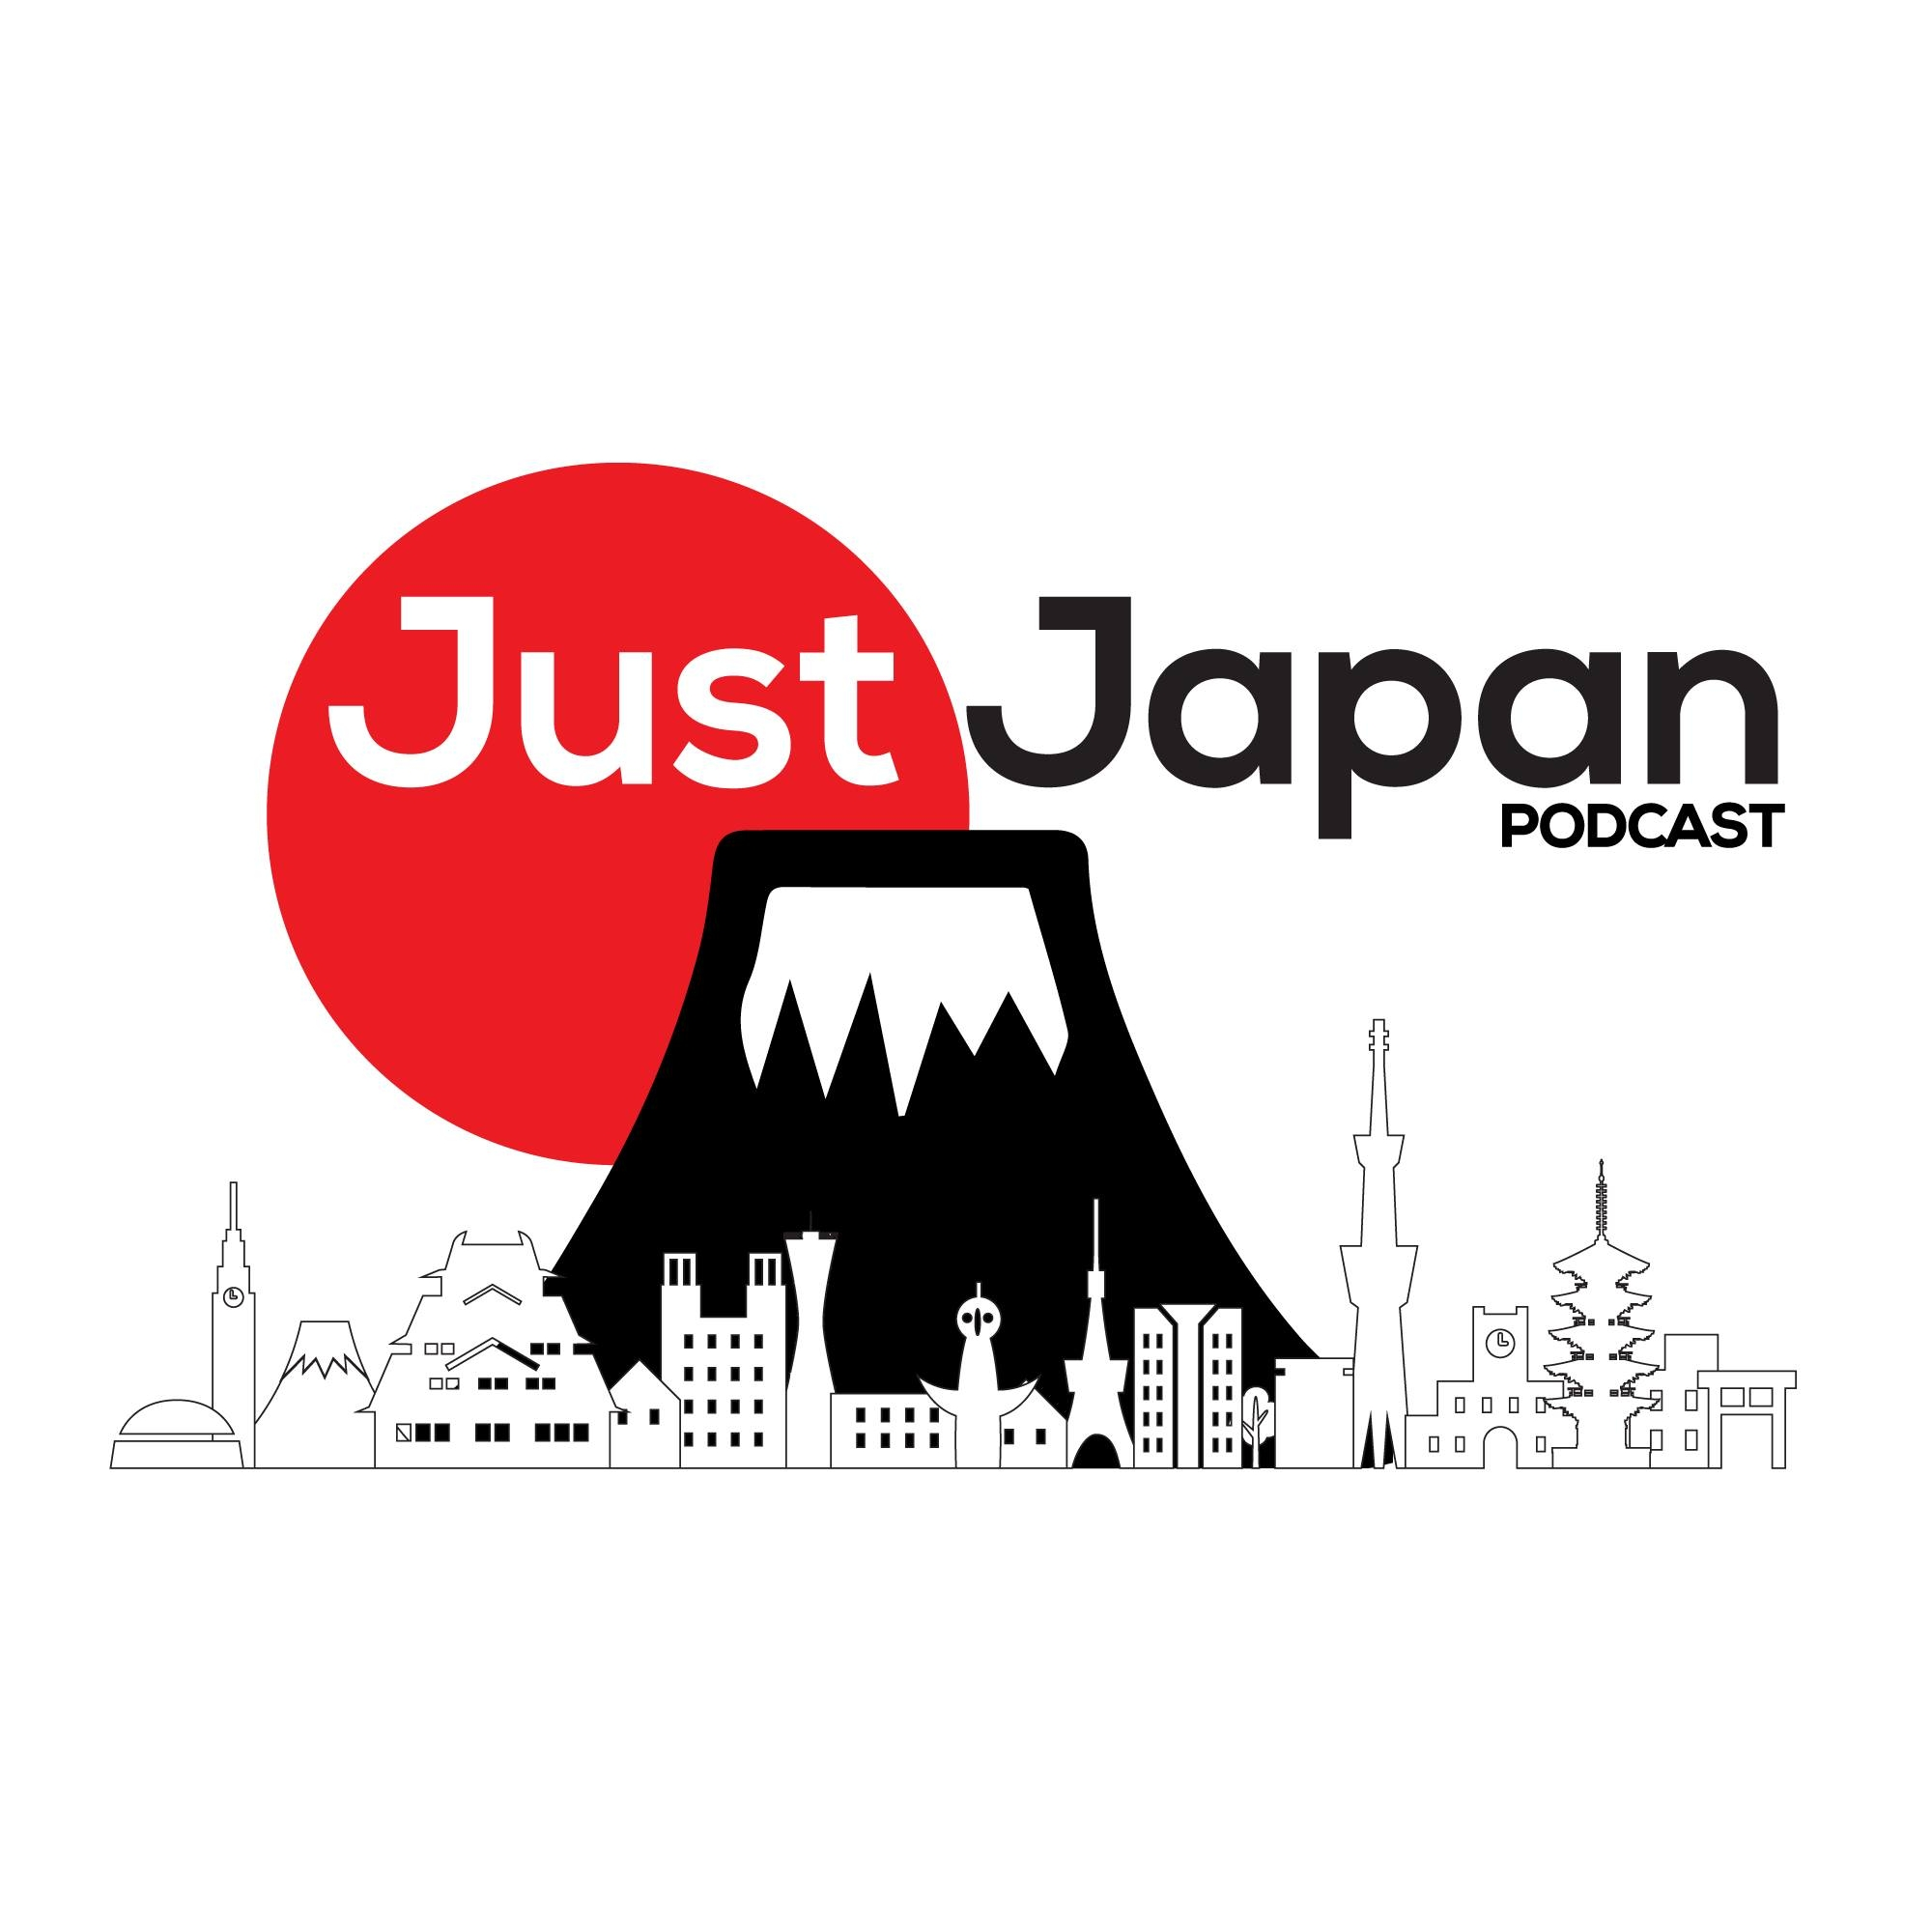 Just Japan Podcast 196: 10 Years Back in Time  show art